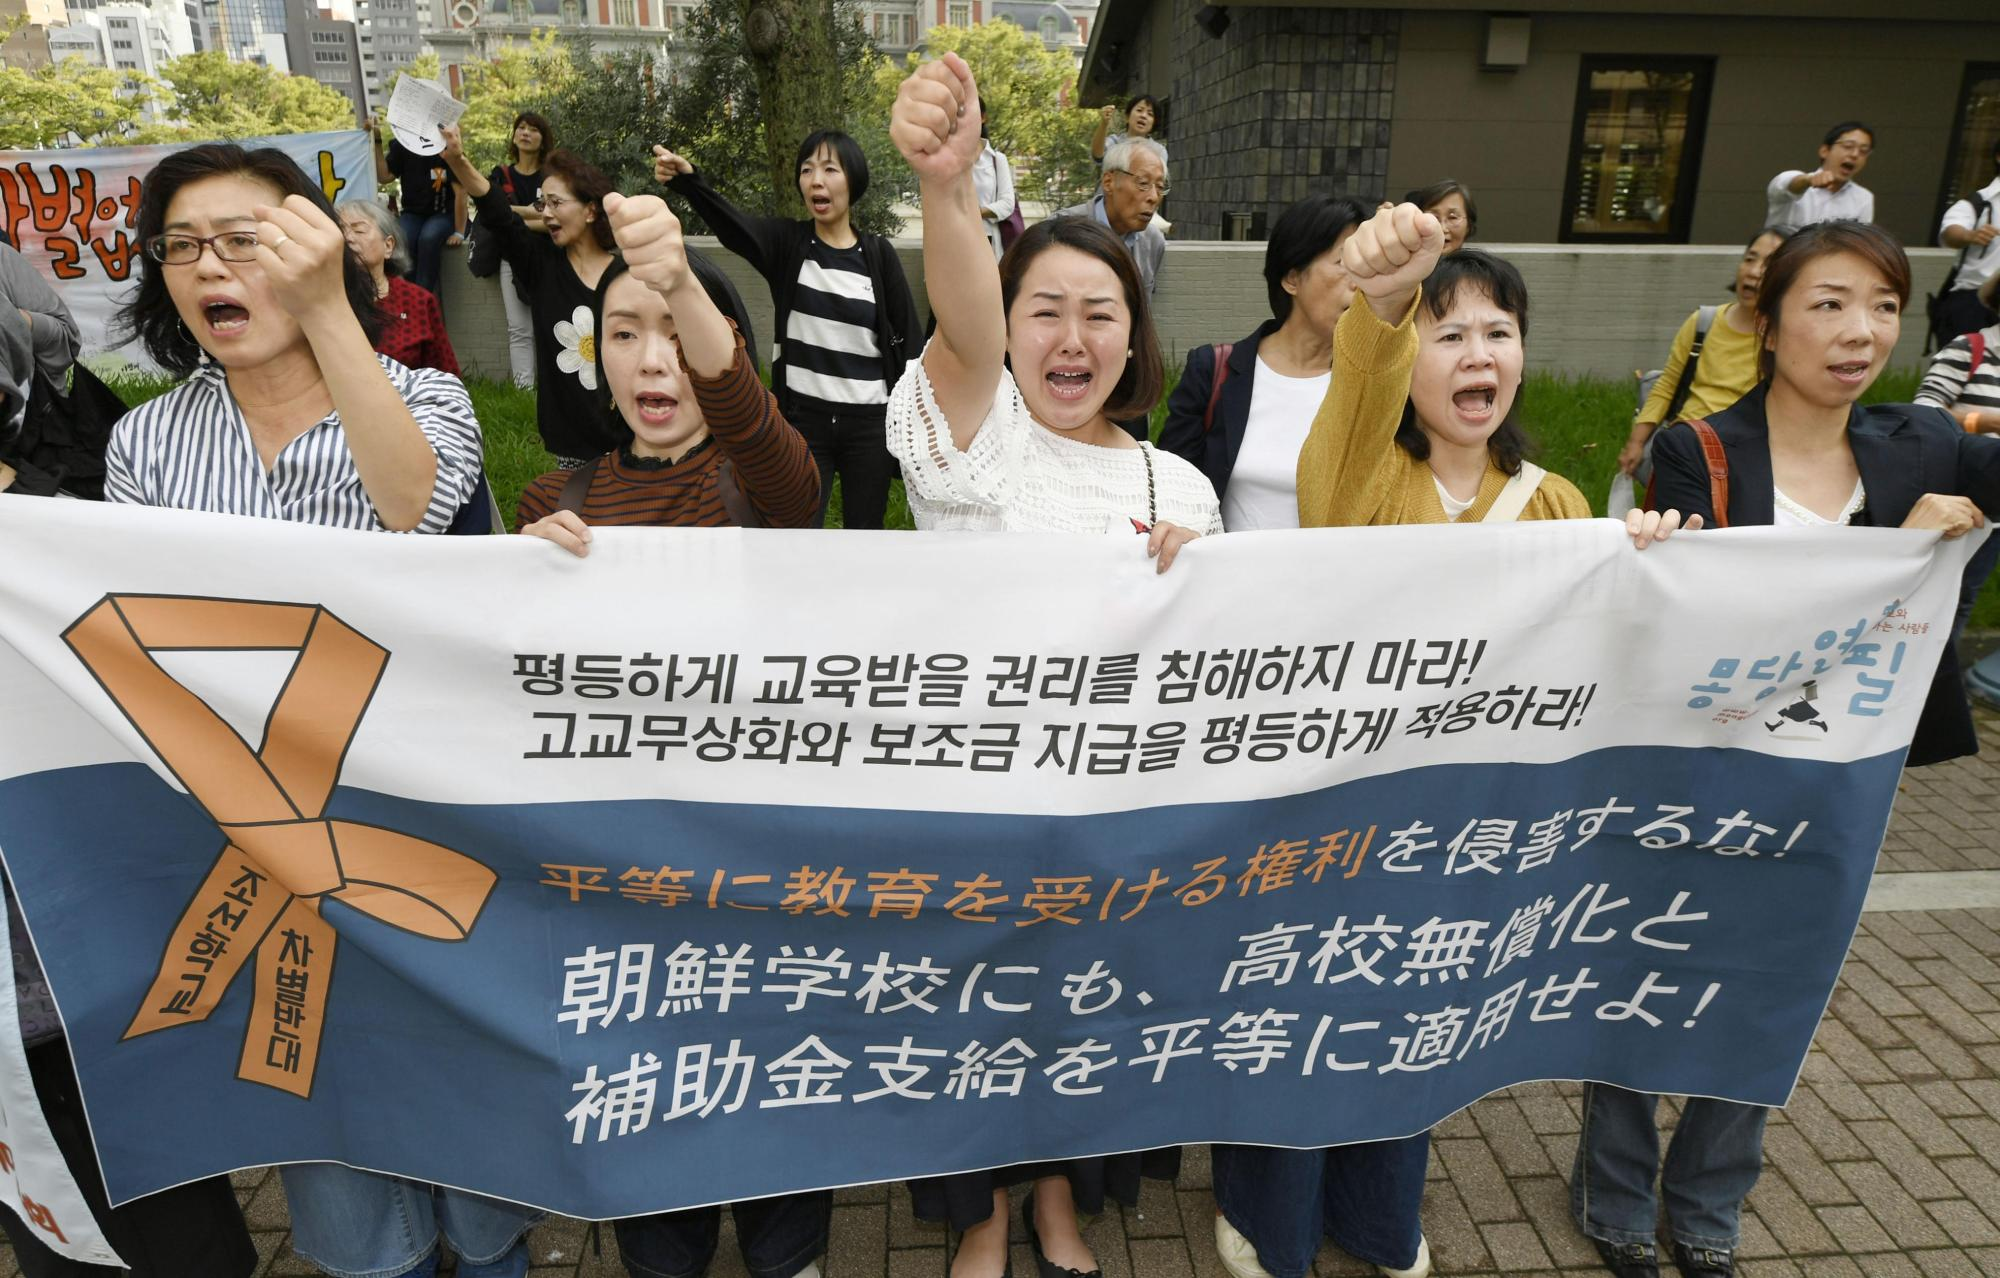 Supporters of Korean schools who oppose the government's decision to deny the institutions access to tuition subsidies stand in front of the Osaka High Court on Thursday, protesting the court's decision that a Korean school in Osaka is not eligible to receive the subsidies. | KYODO